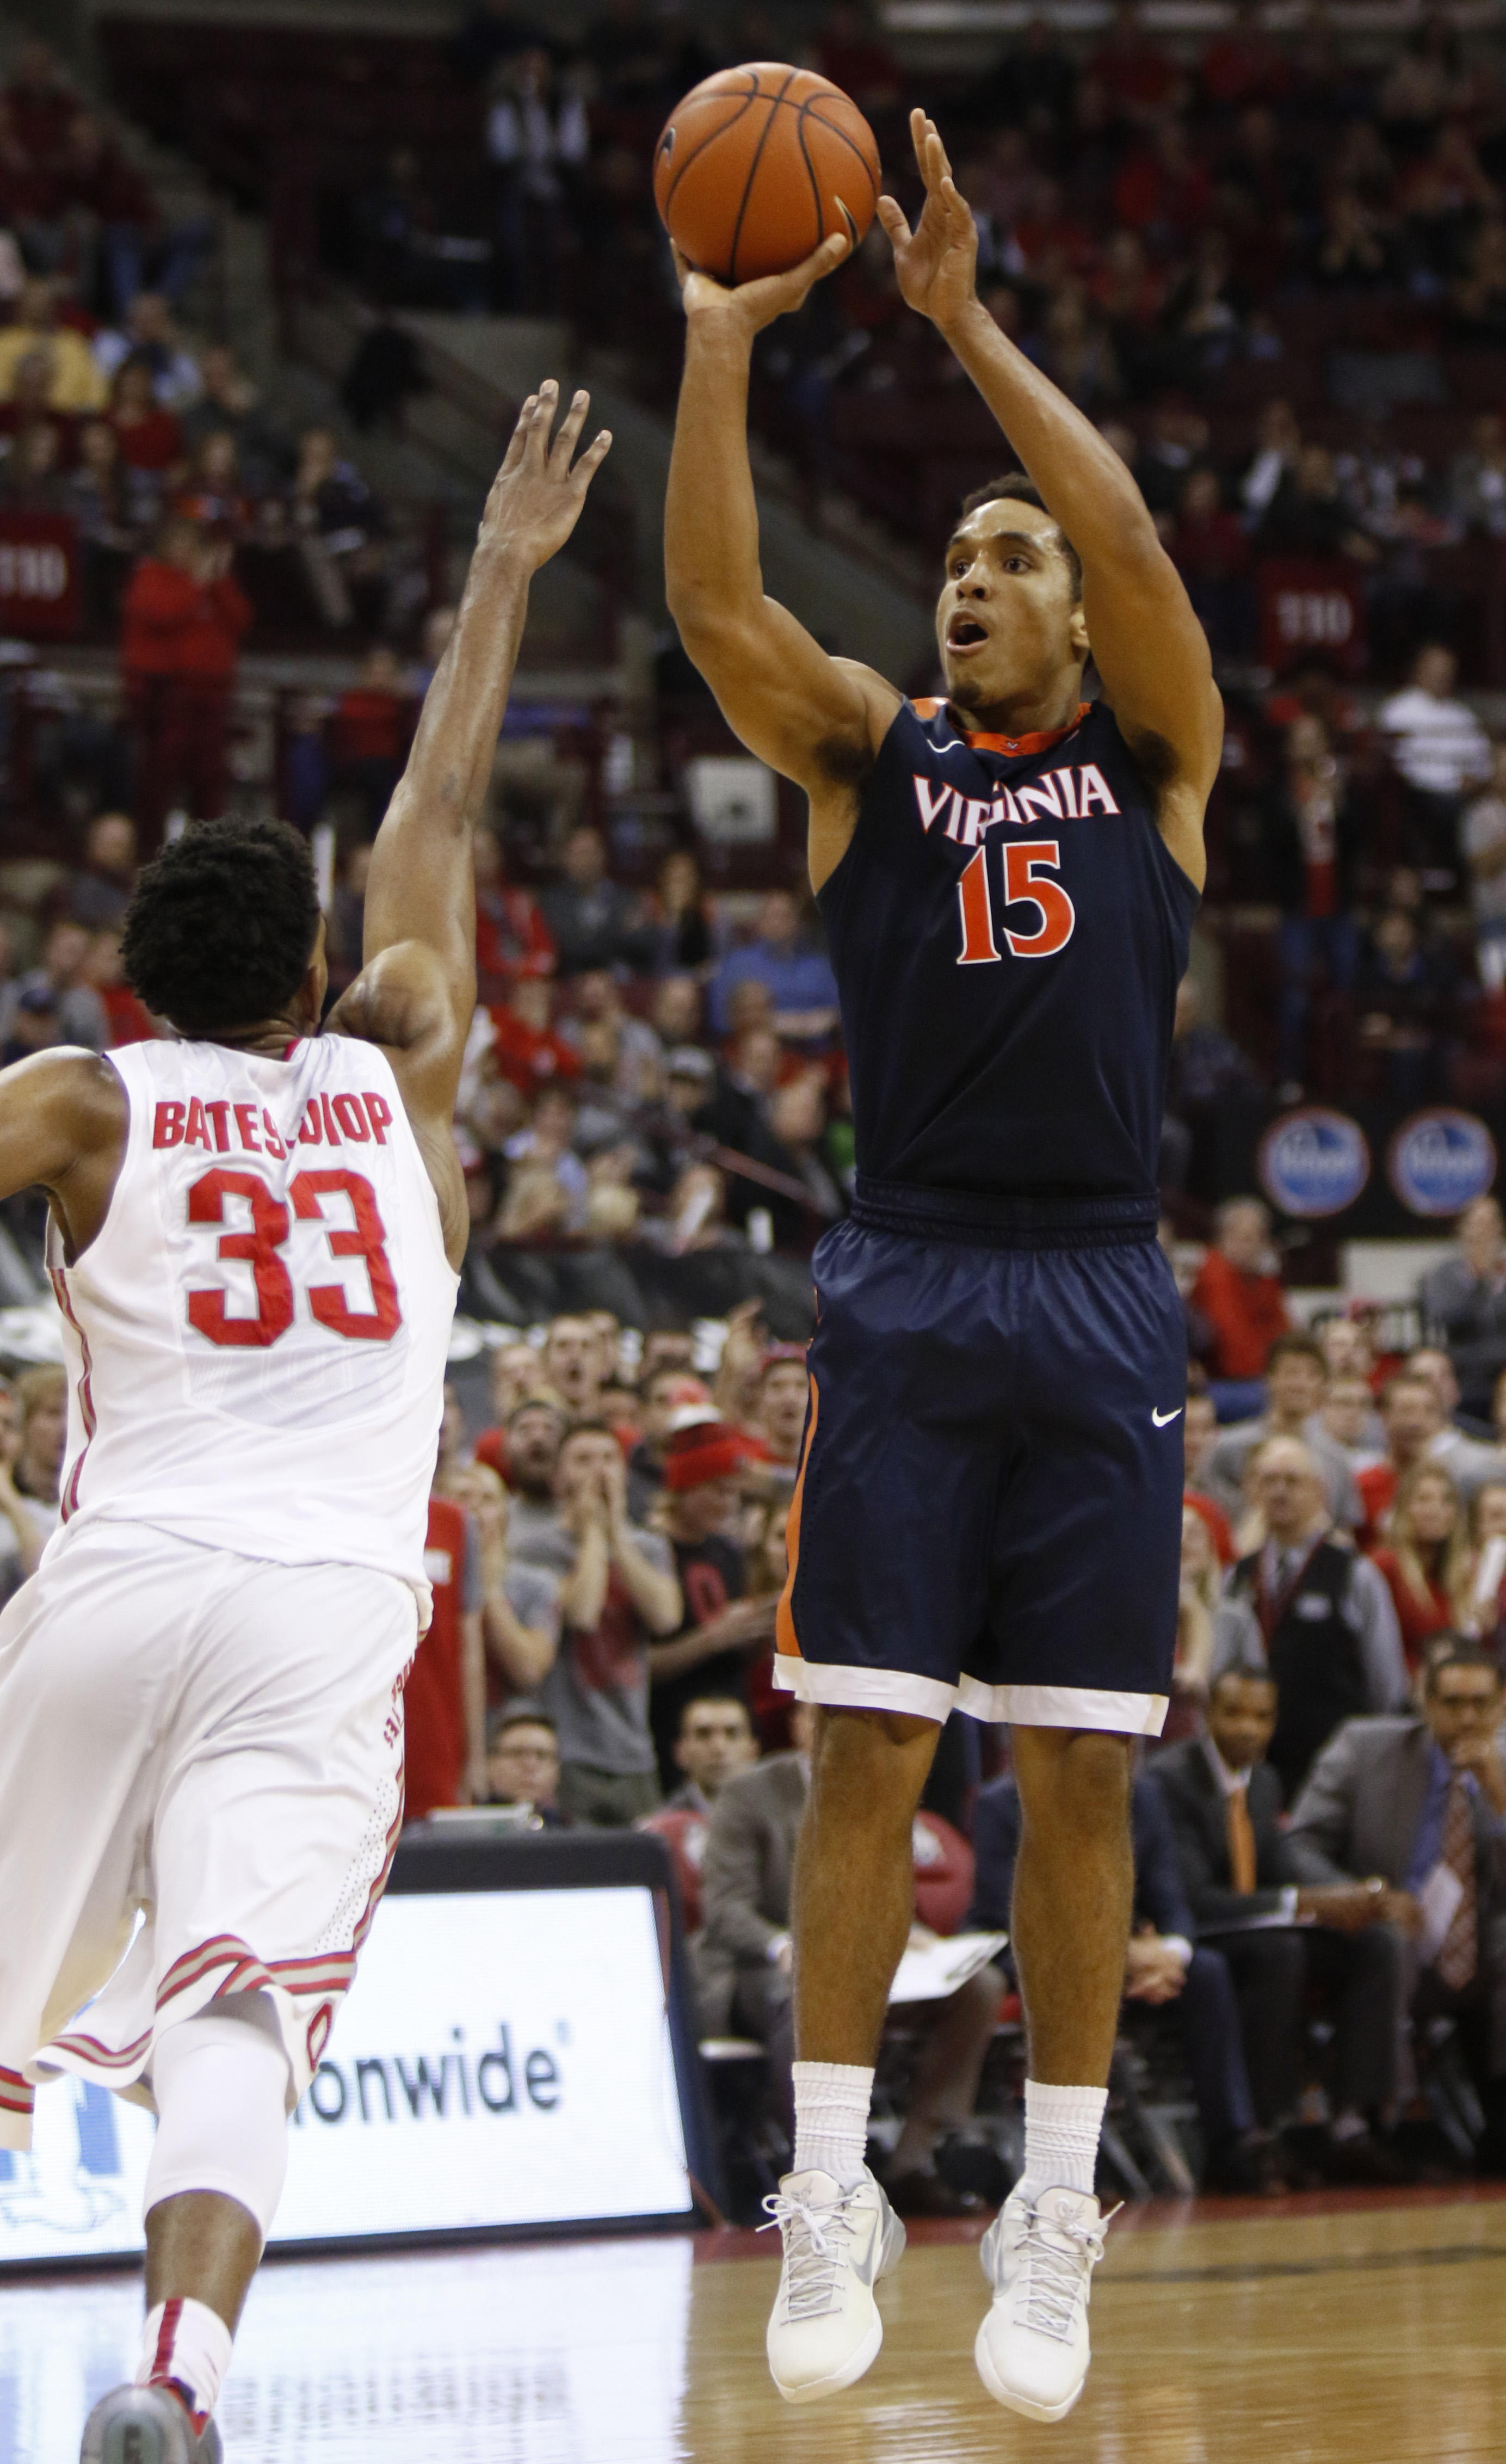 Virginia's Malcolm Brogdon, right, shoots against Ohio State's Keita Bates-Diop during the first half of an NCAA college basketball game in Columbus, Ohio, Tuesday, Dec. 1, 2015. (AP Photo/Paul Vernon)